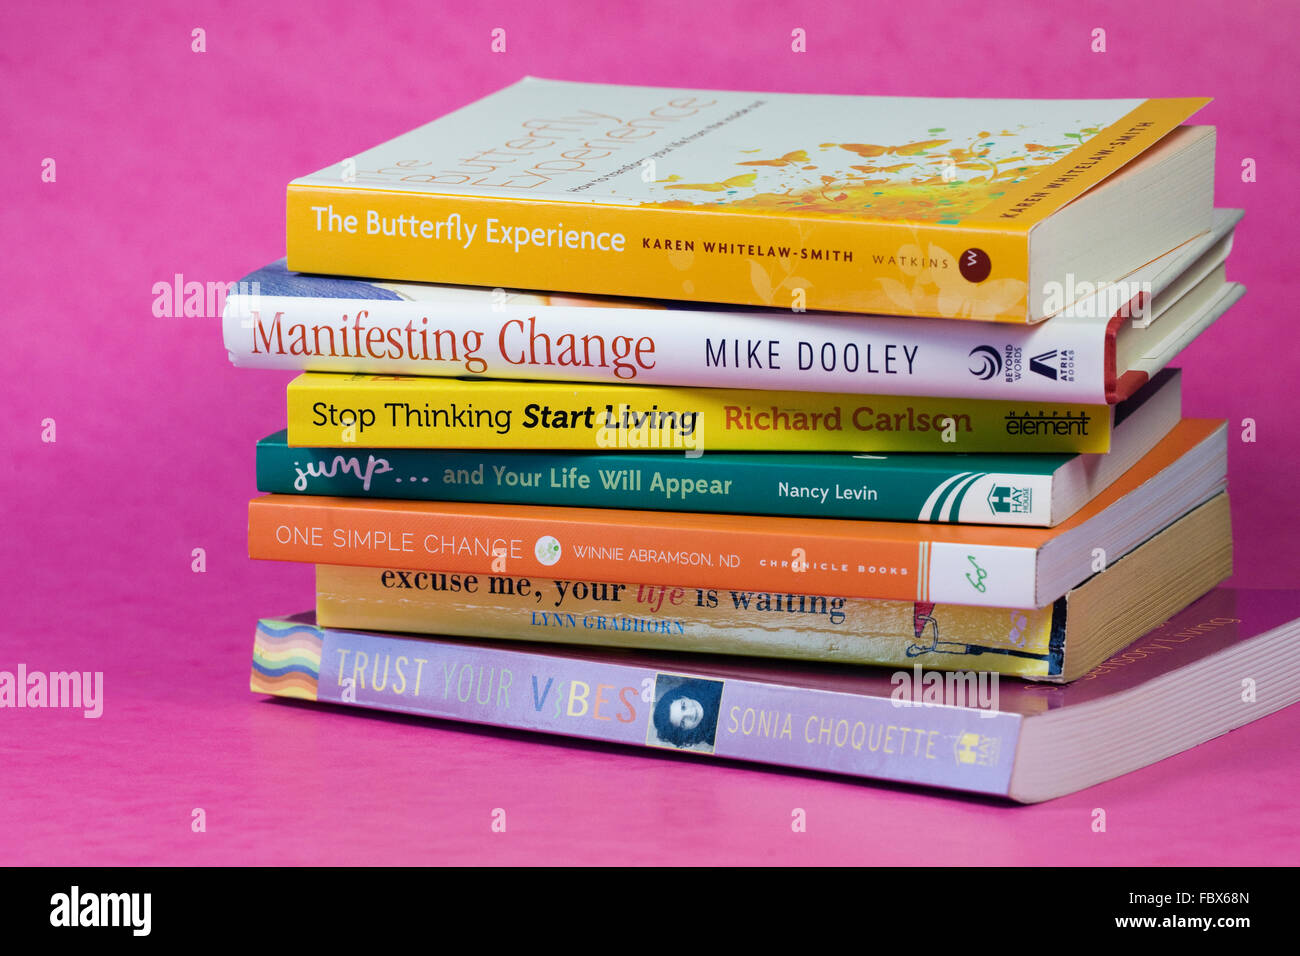 A pile of self help books on a pink background. - Stock Image